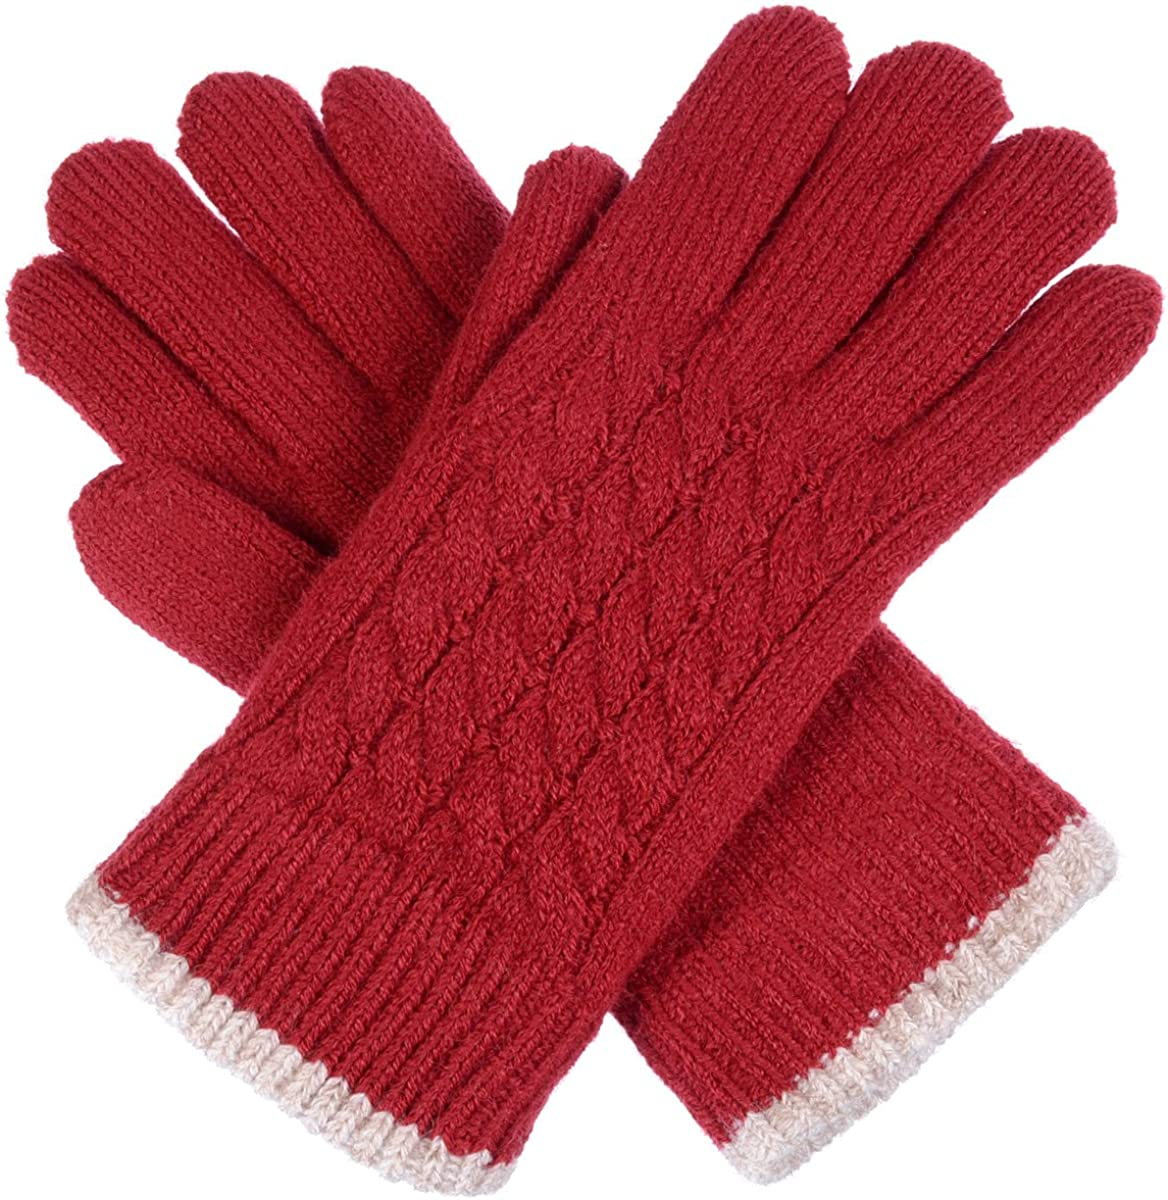 BYOS Women's Winter Classic Cable Warm Plush Fleece Lined Knit Gloves